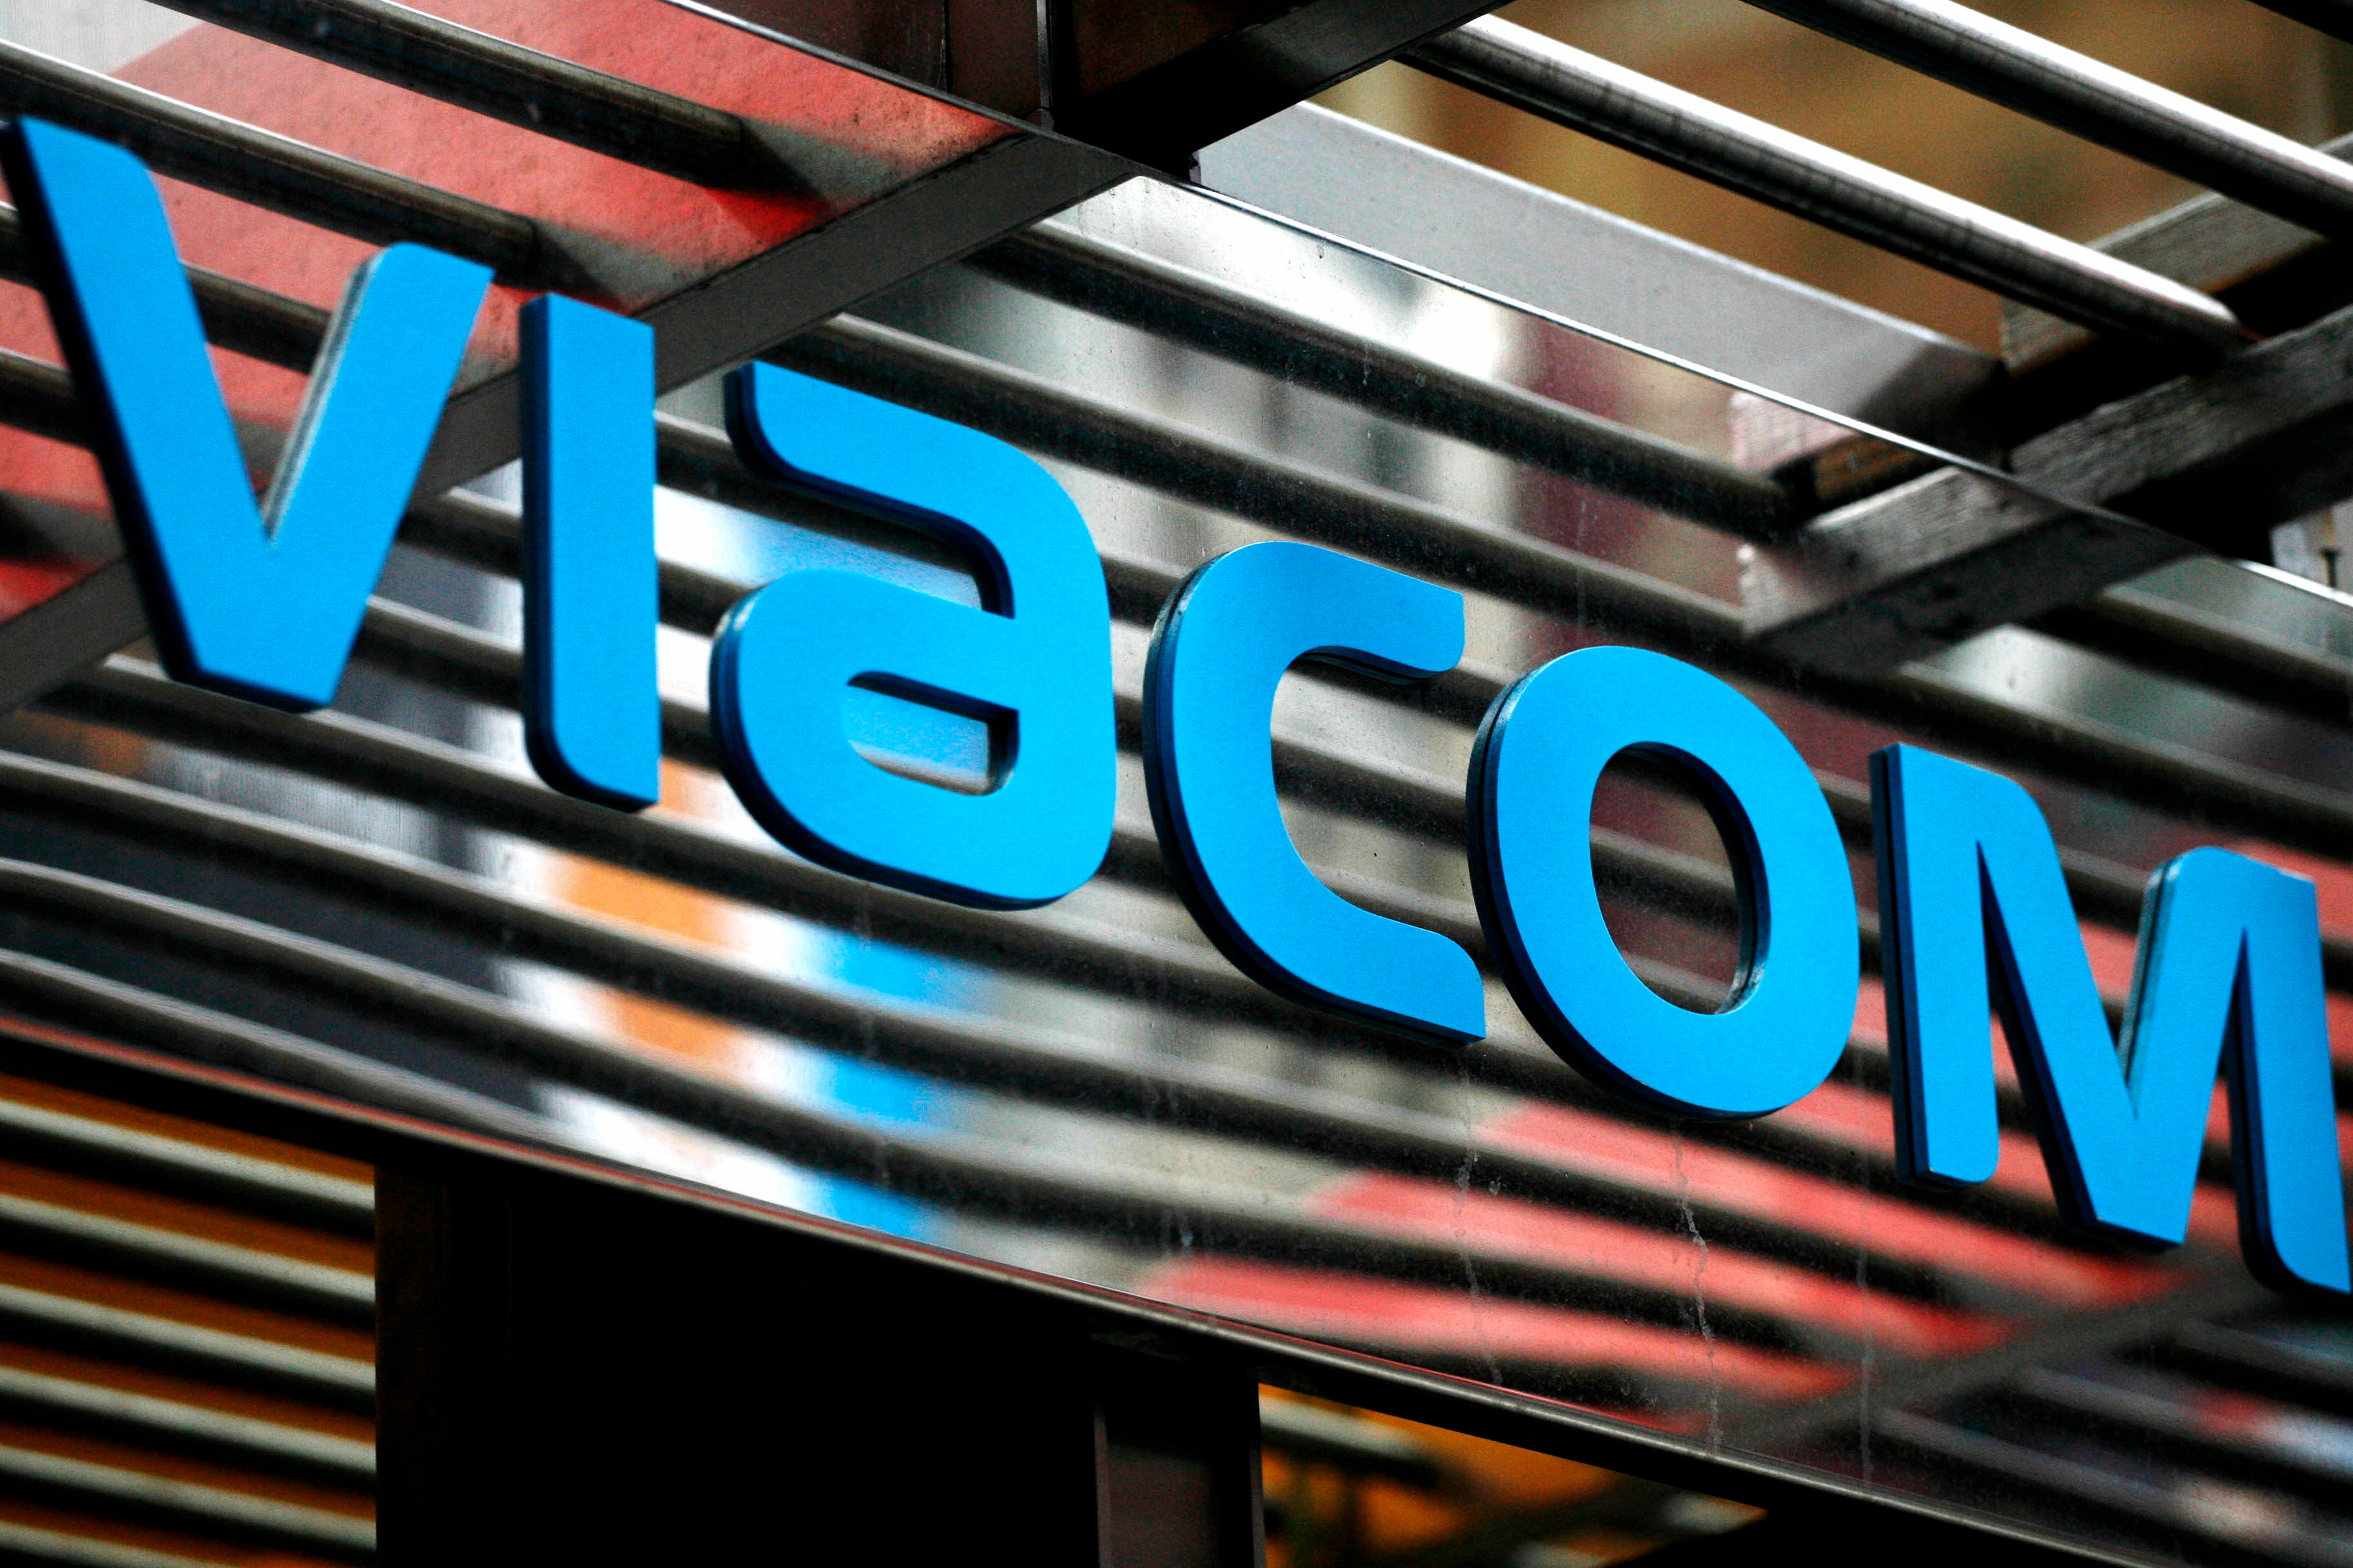 five forces of viacom Wikiwealth offers a comprehensive swot analysis of viacom (via) our free research report includes viacom's strengths, weaknesses, opportunities, and threats.